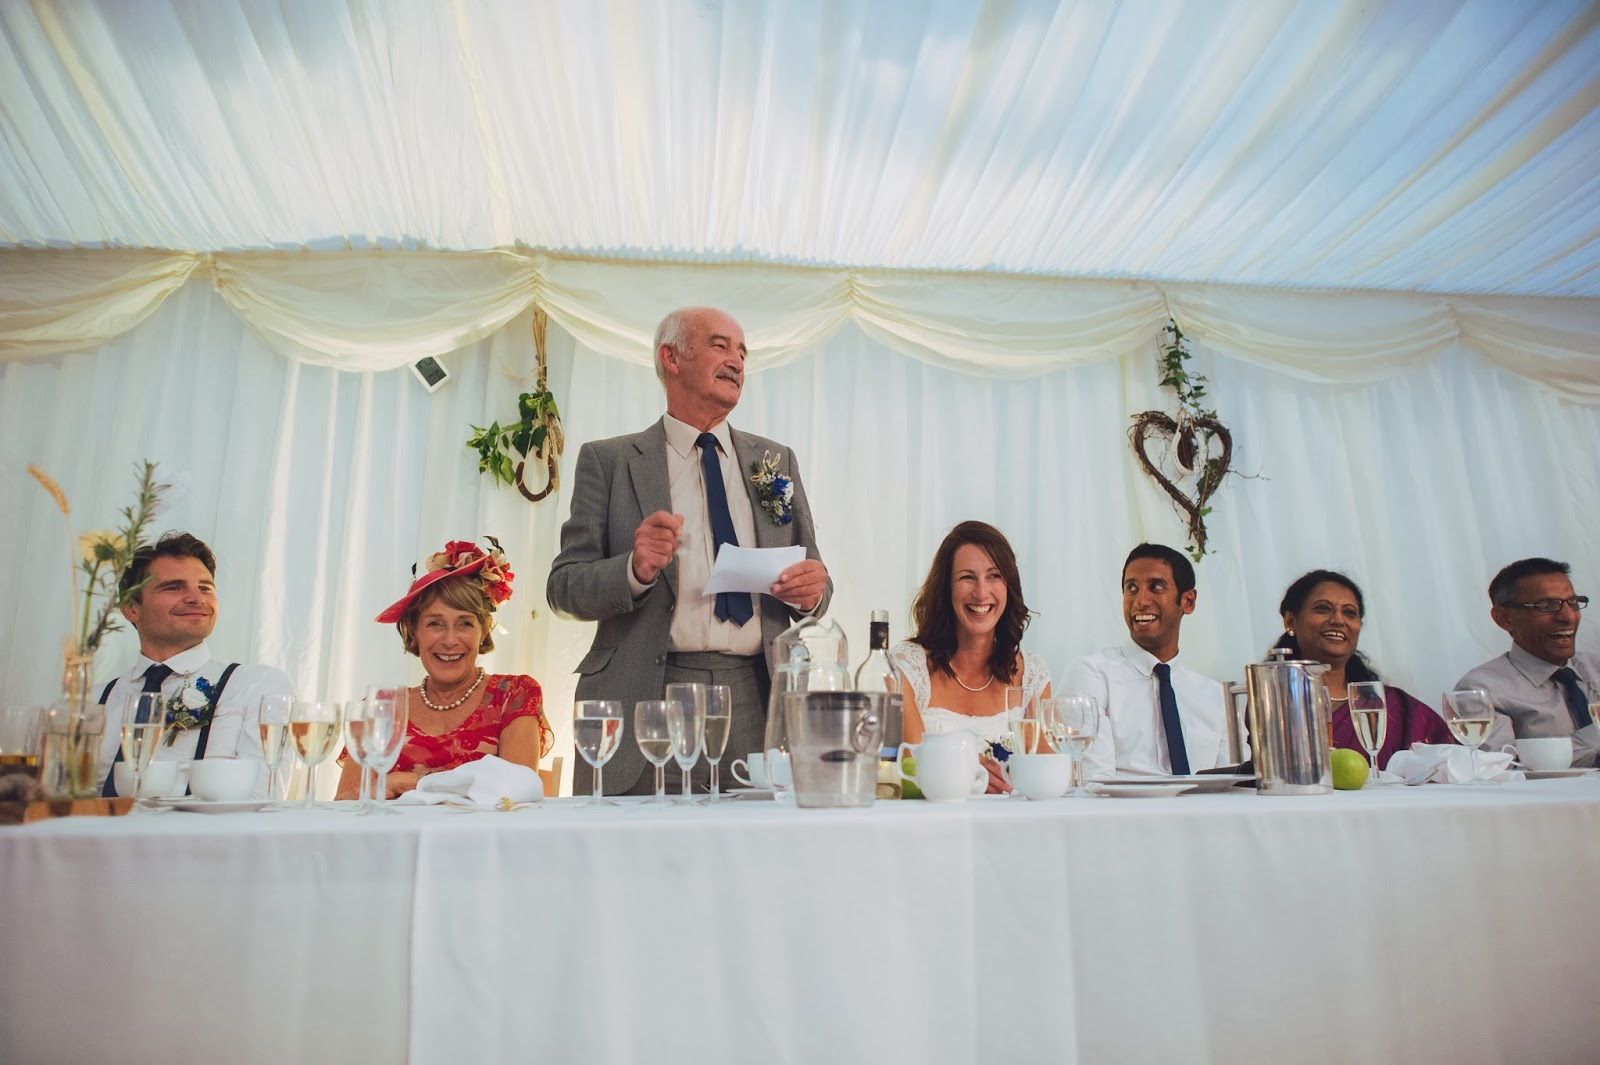 Father of Bride speech at Quantock Lakes wedding